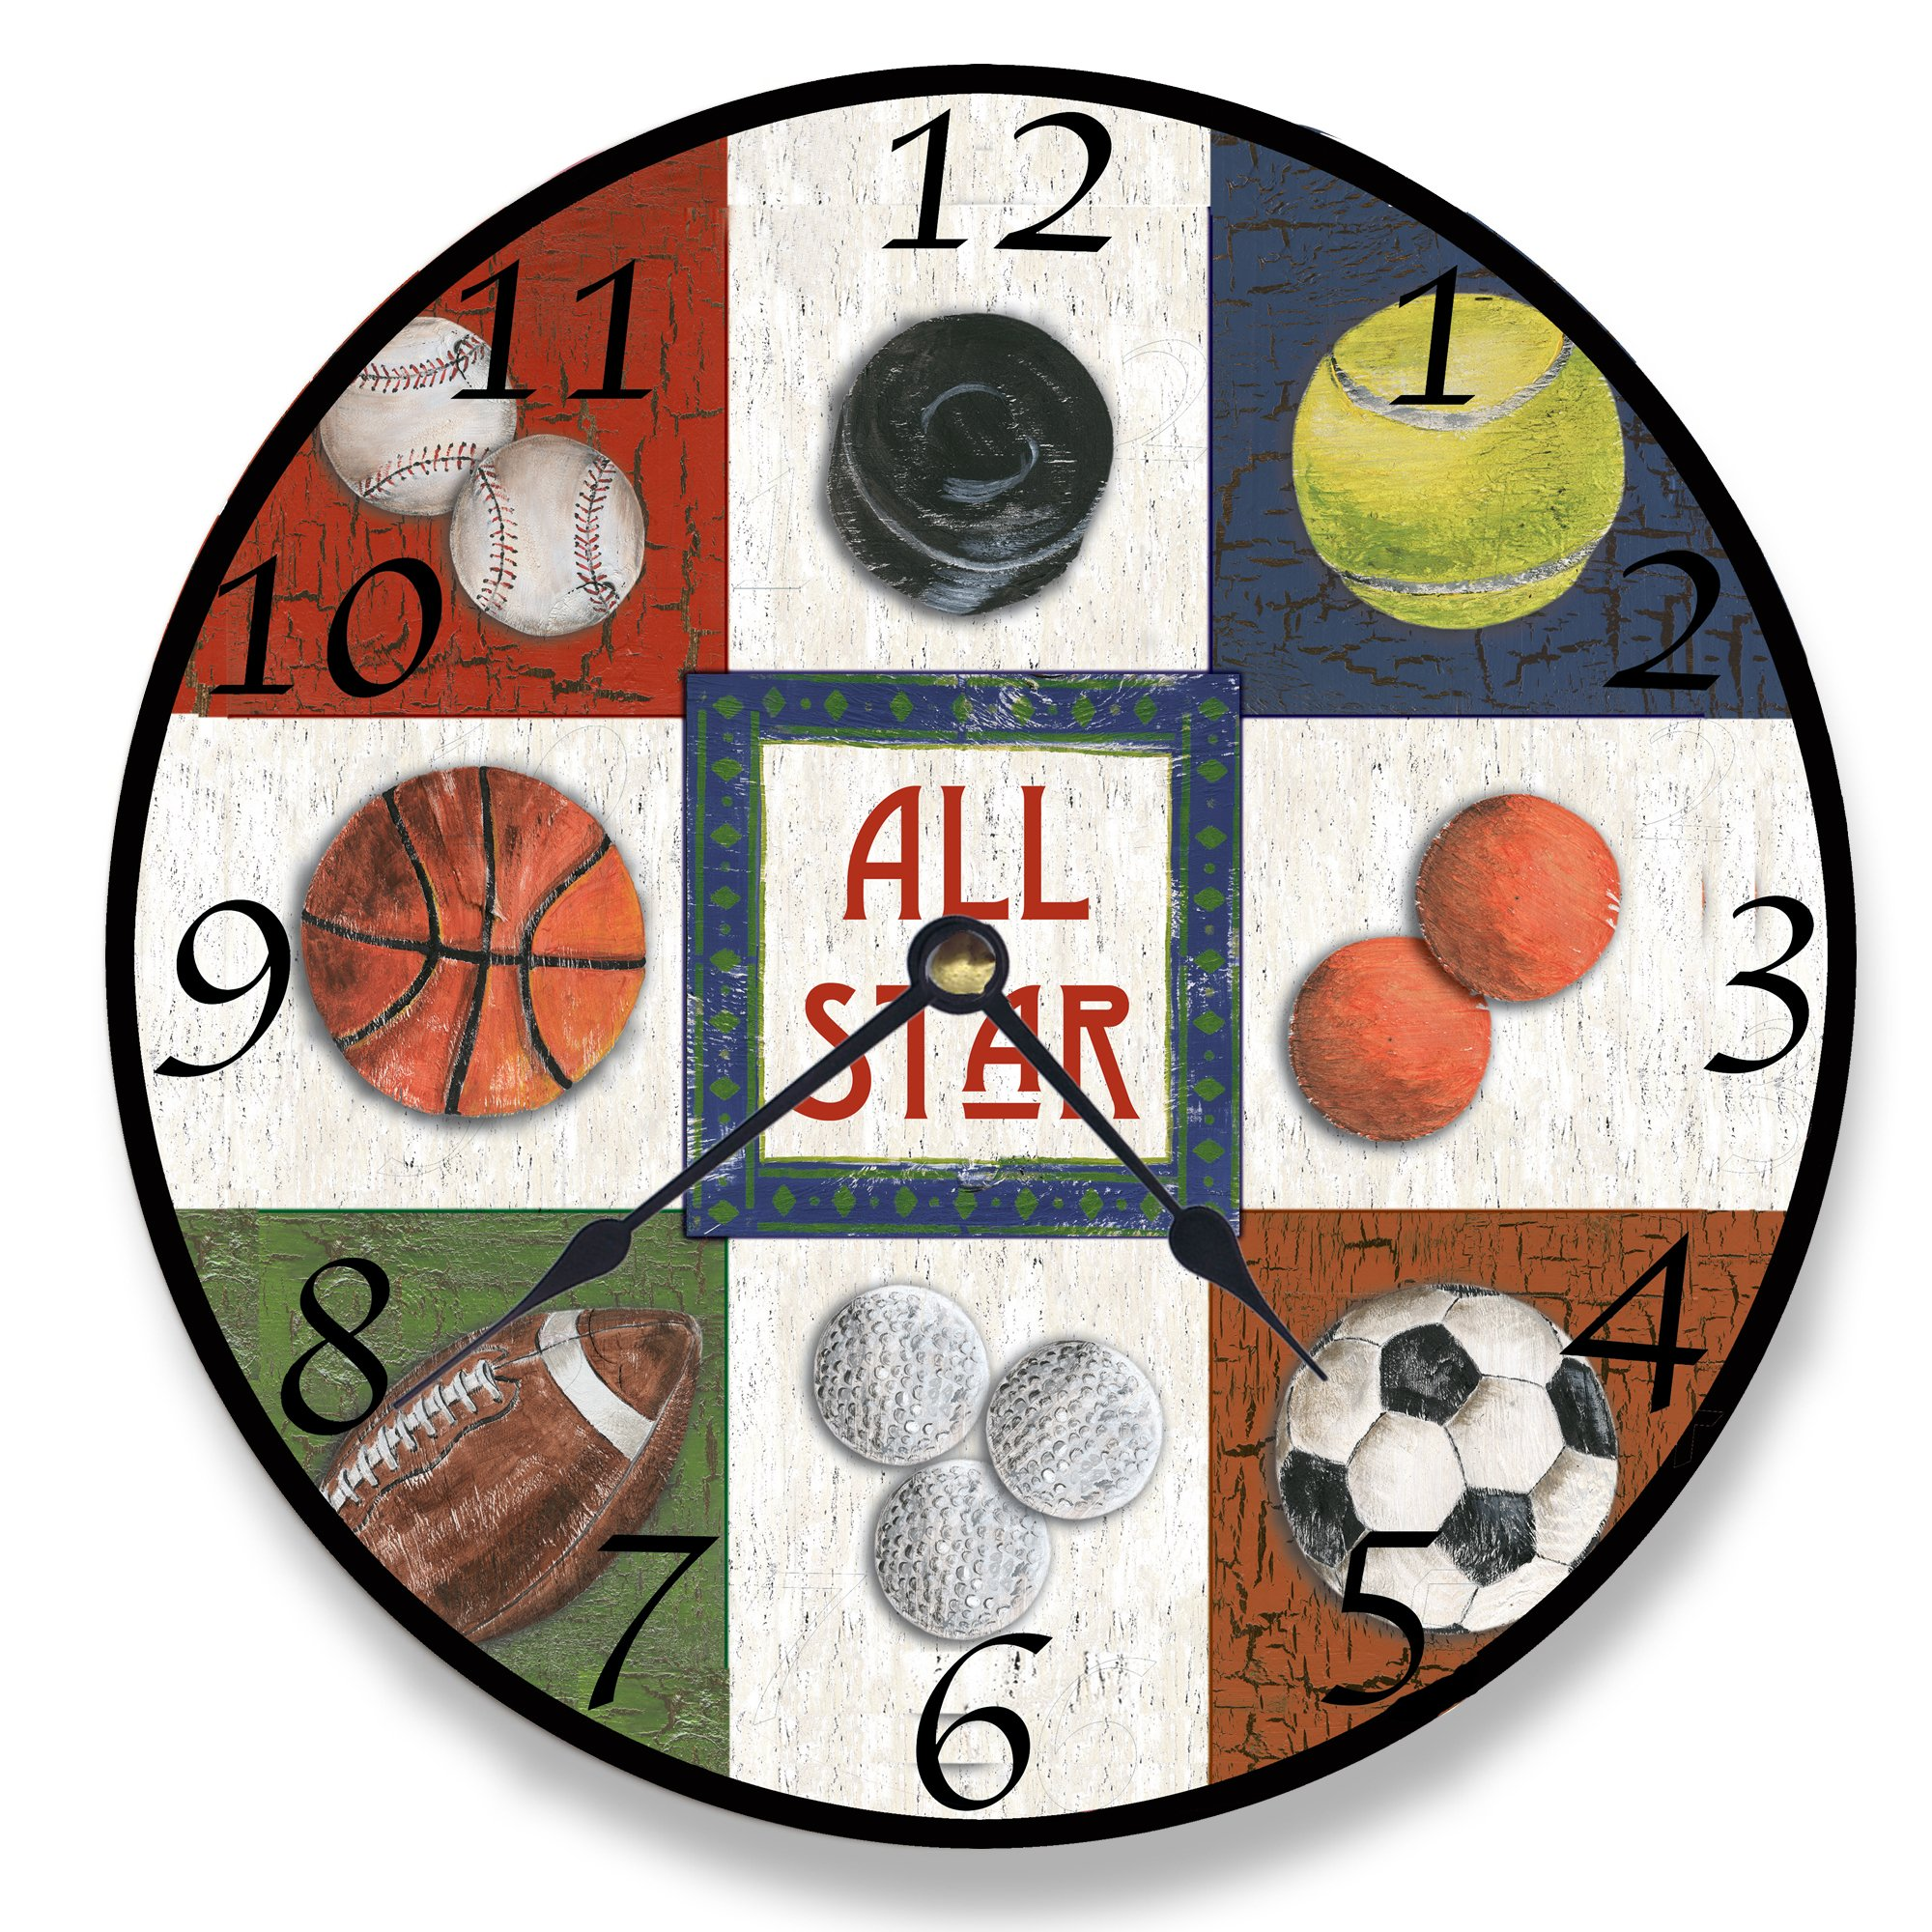 Stupell Home Décor 9 Patch All Star Sports Wall Clock, 12 x 0.4 x 12, Proudly Made in USA